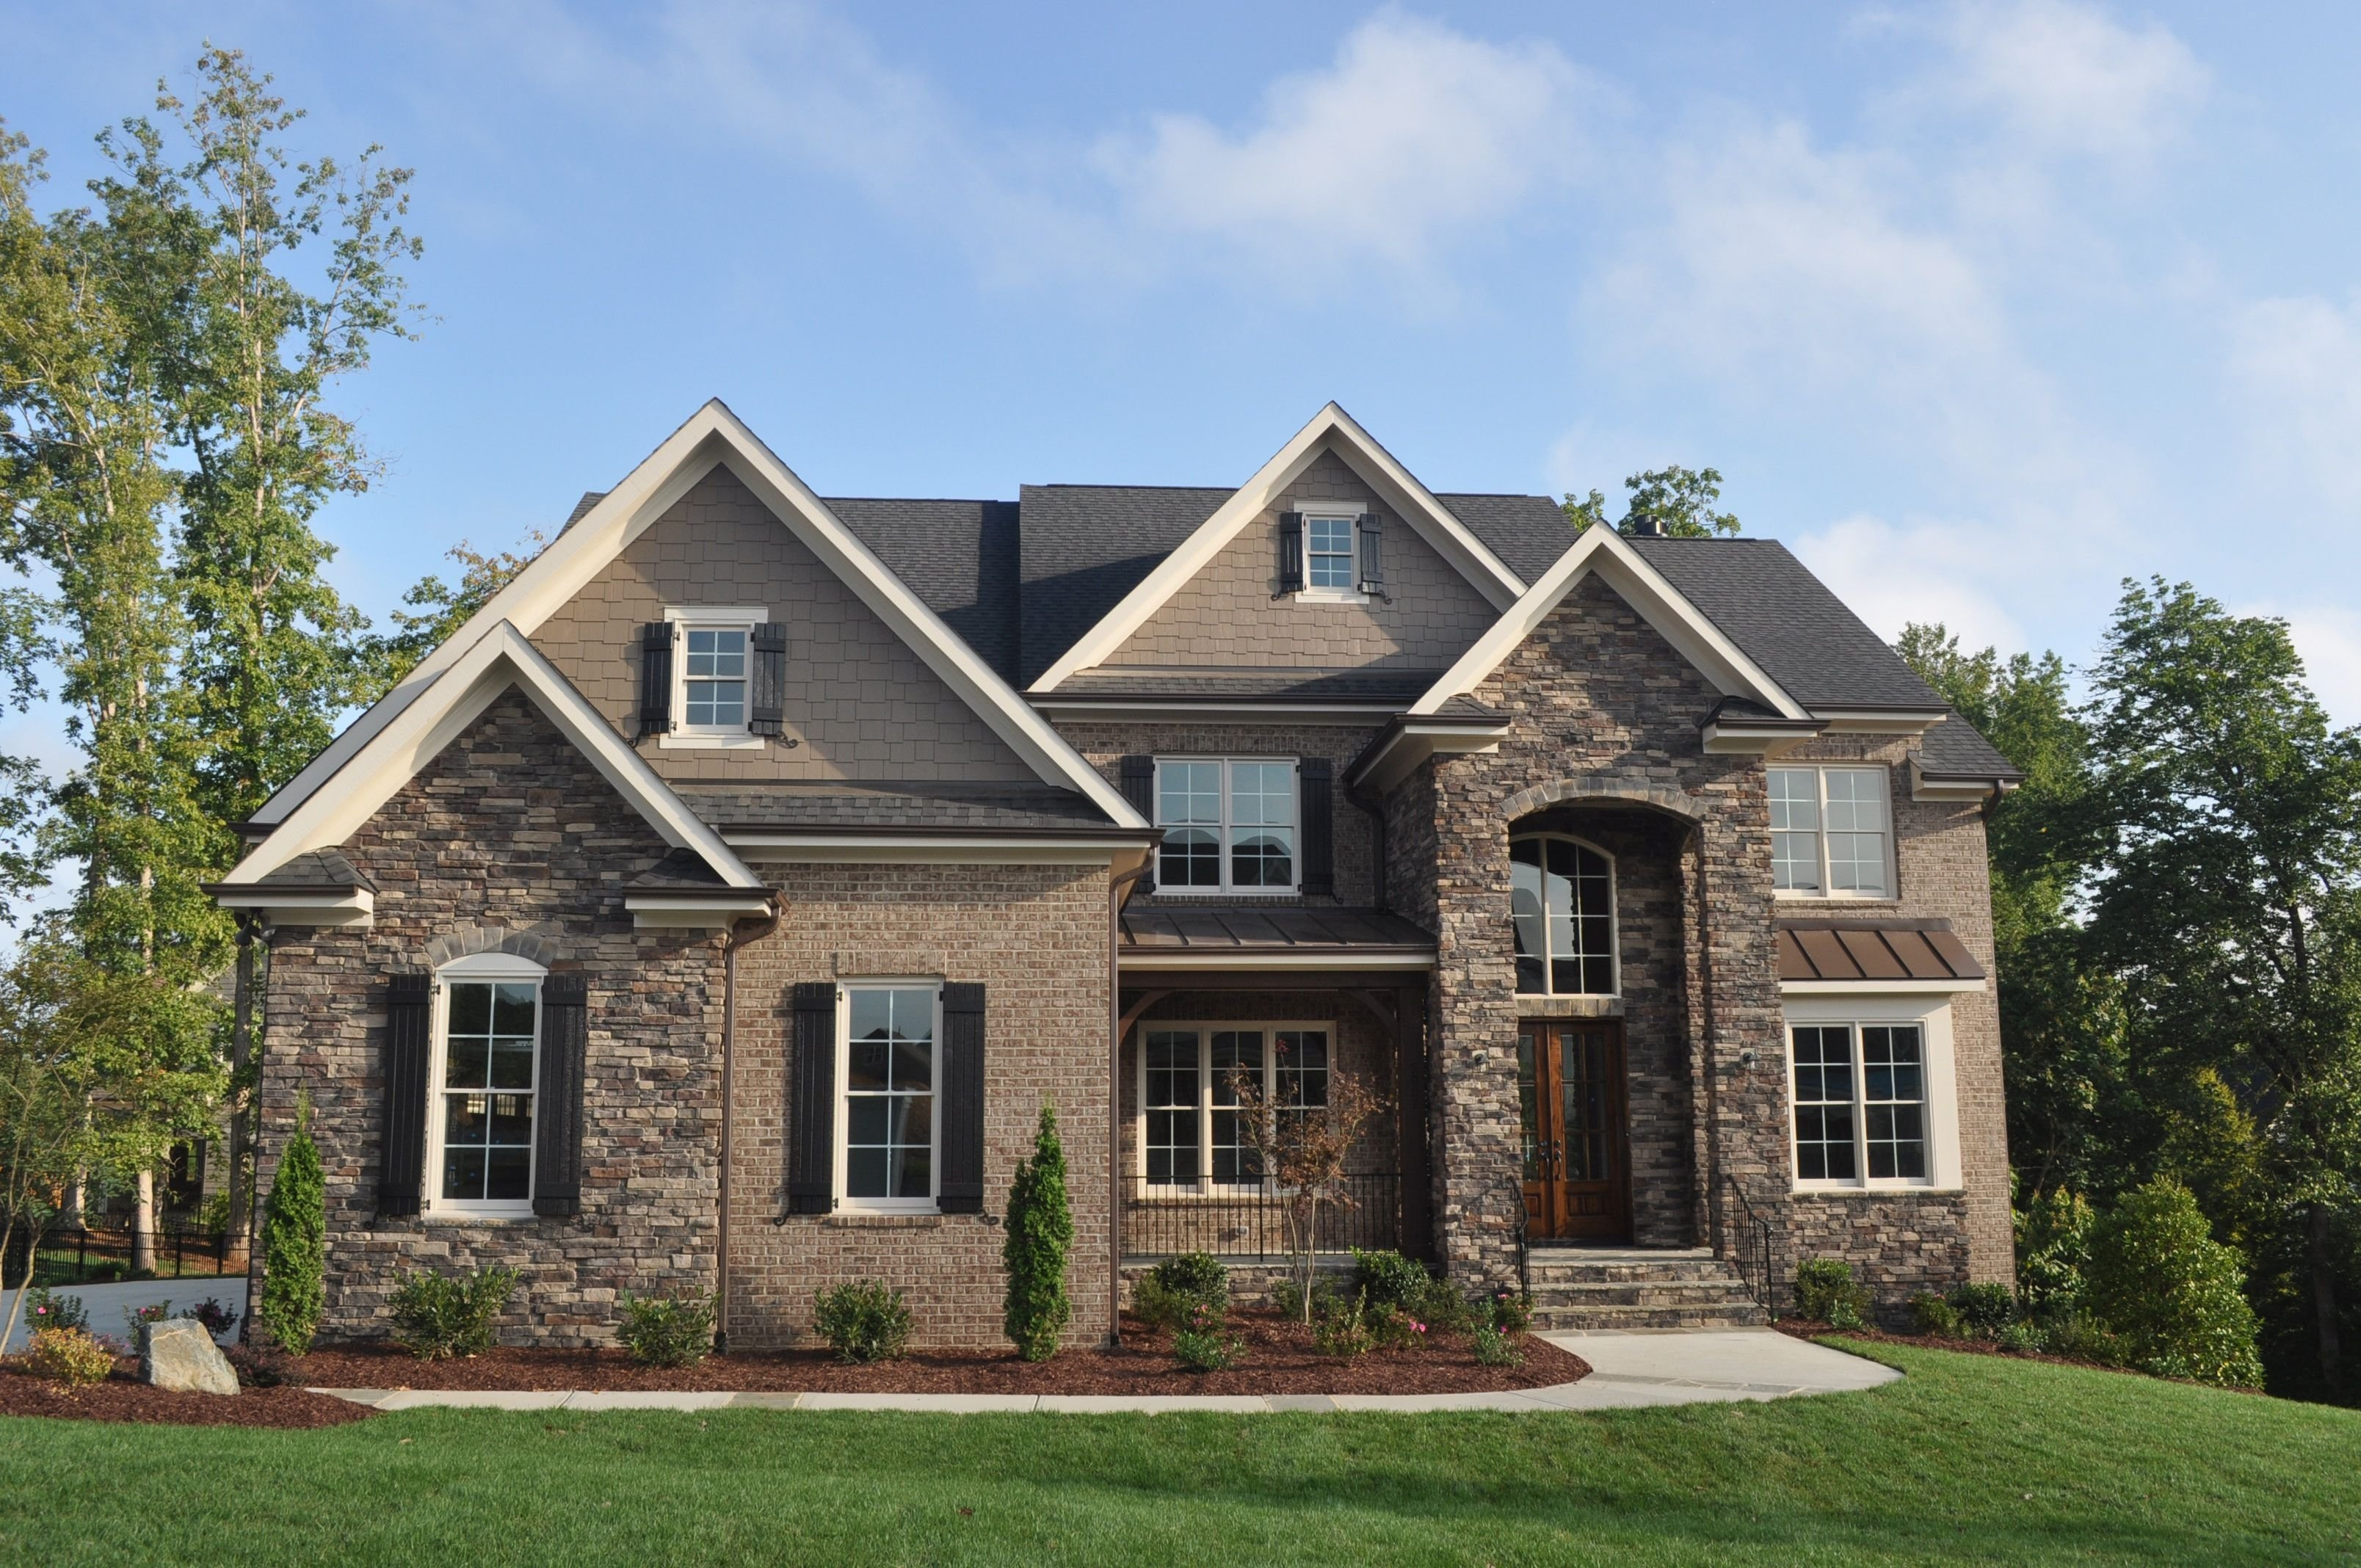 brick and stone exterior with a little siding | exterior of new home